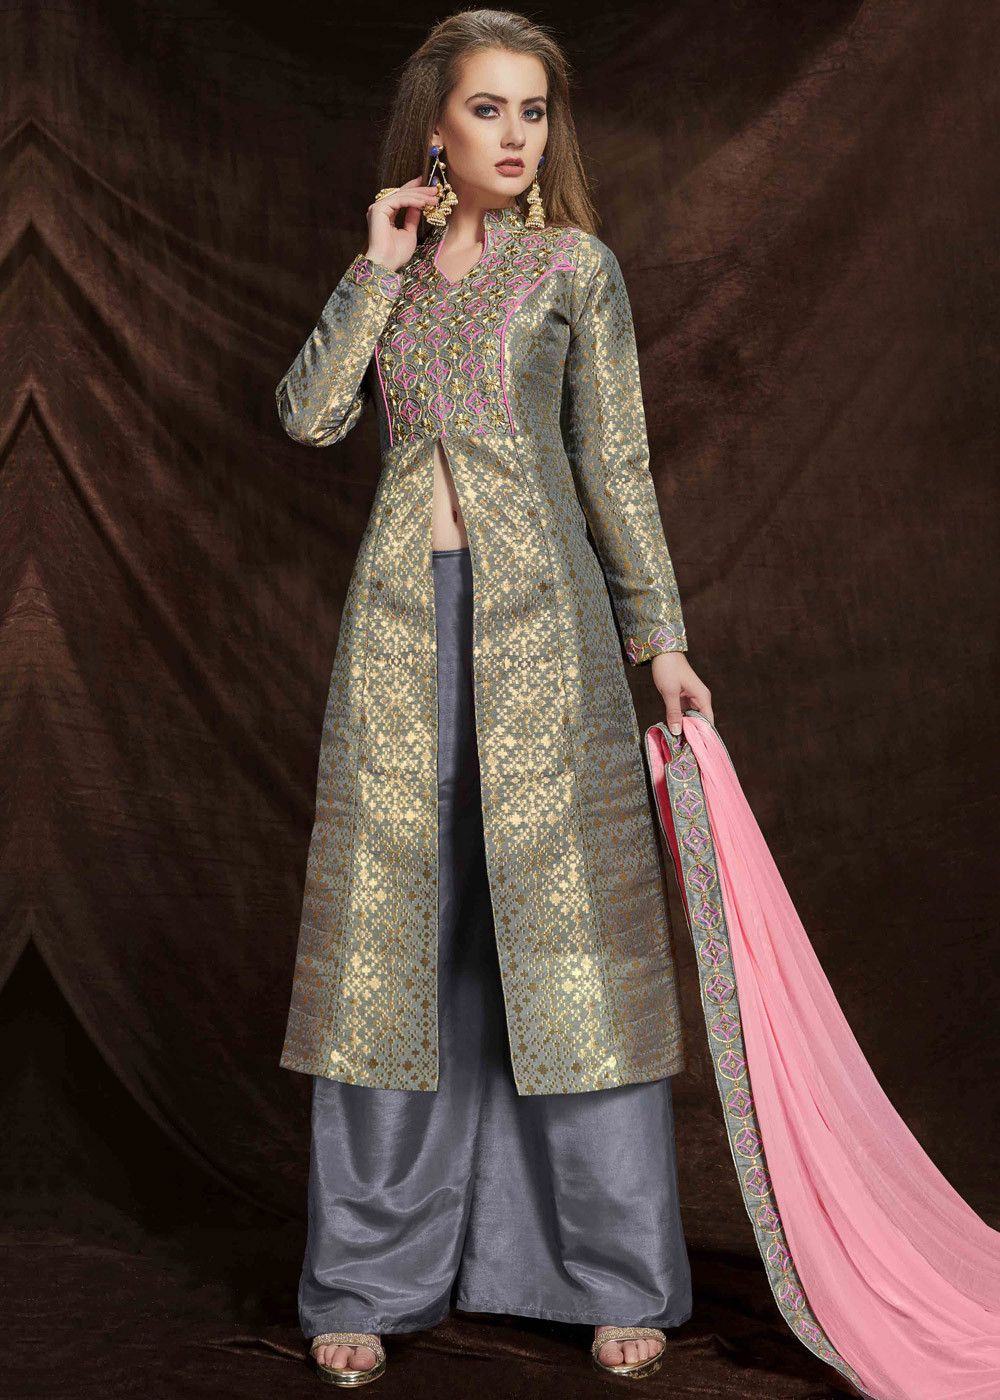 b6efc549d8 #Grey and #gold front slit full sleeved #kameez in #banarasi #silk  #jacquard with all over woven details and #embroidered yoke.